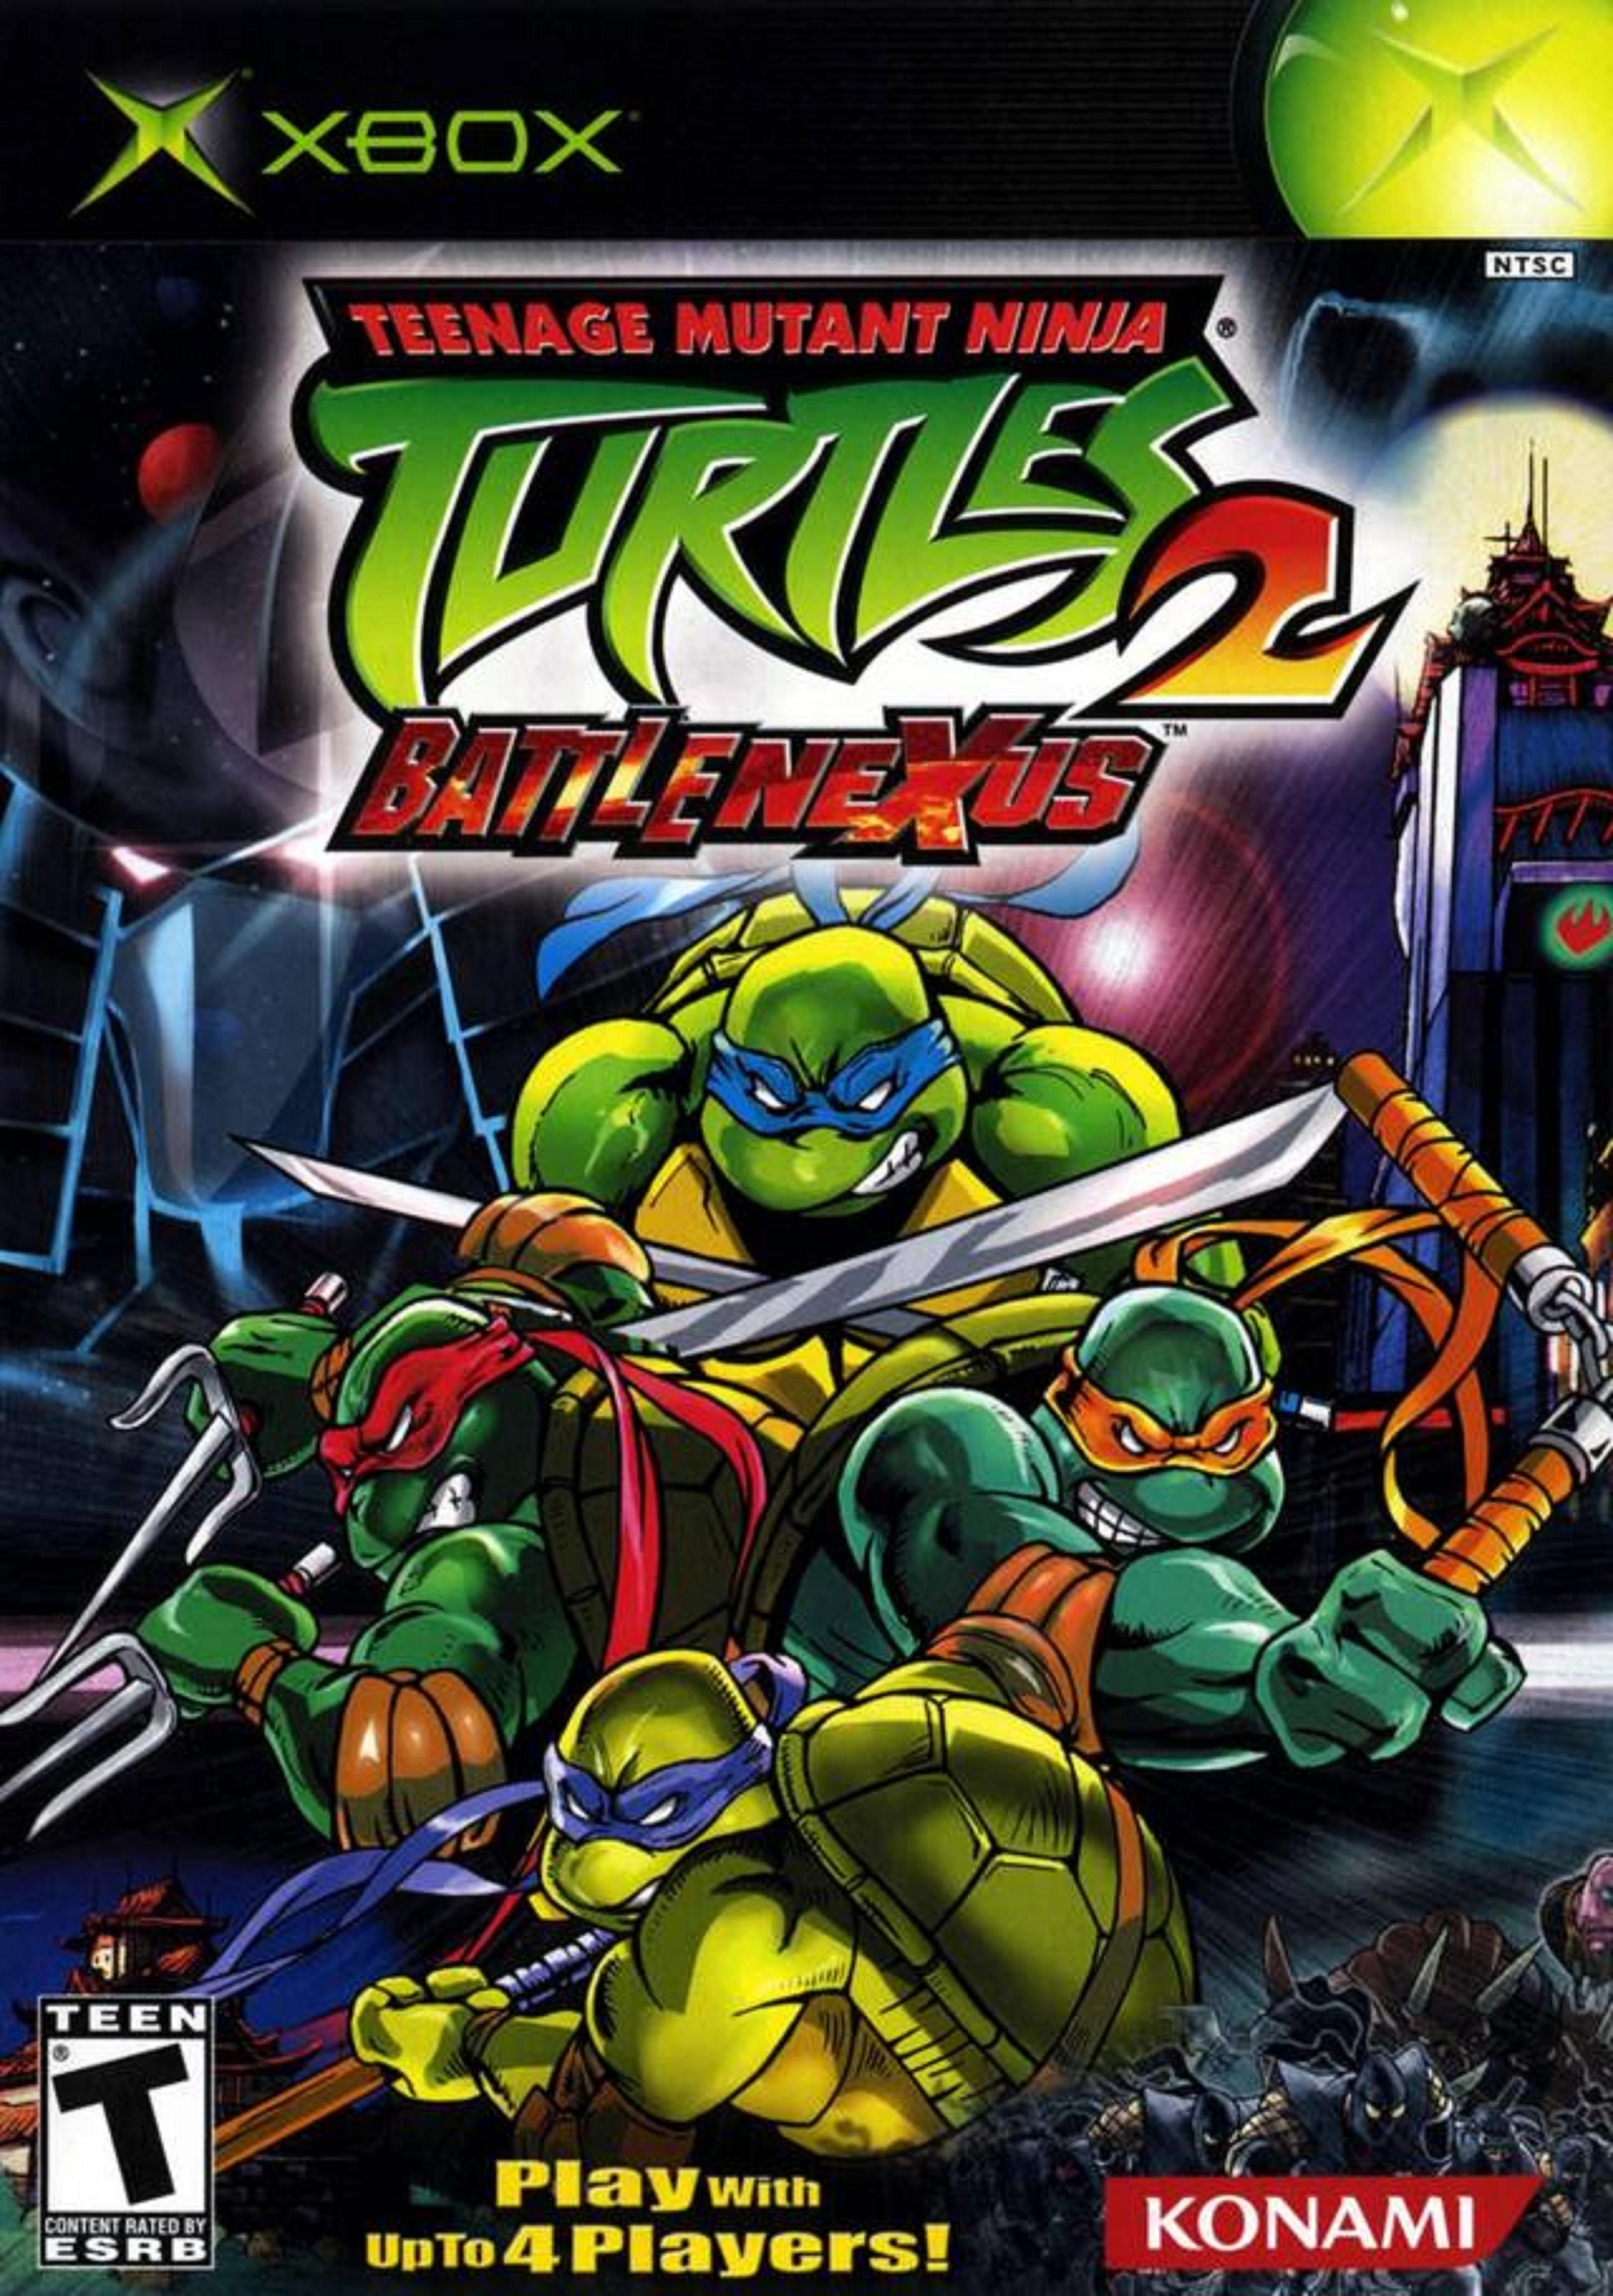 Teenage Mutant Ninja Turtles 2 Battle Nexus Video Game 2004 Imdb